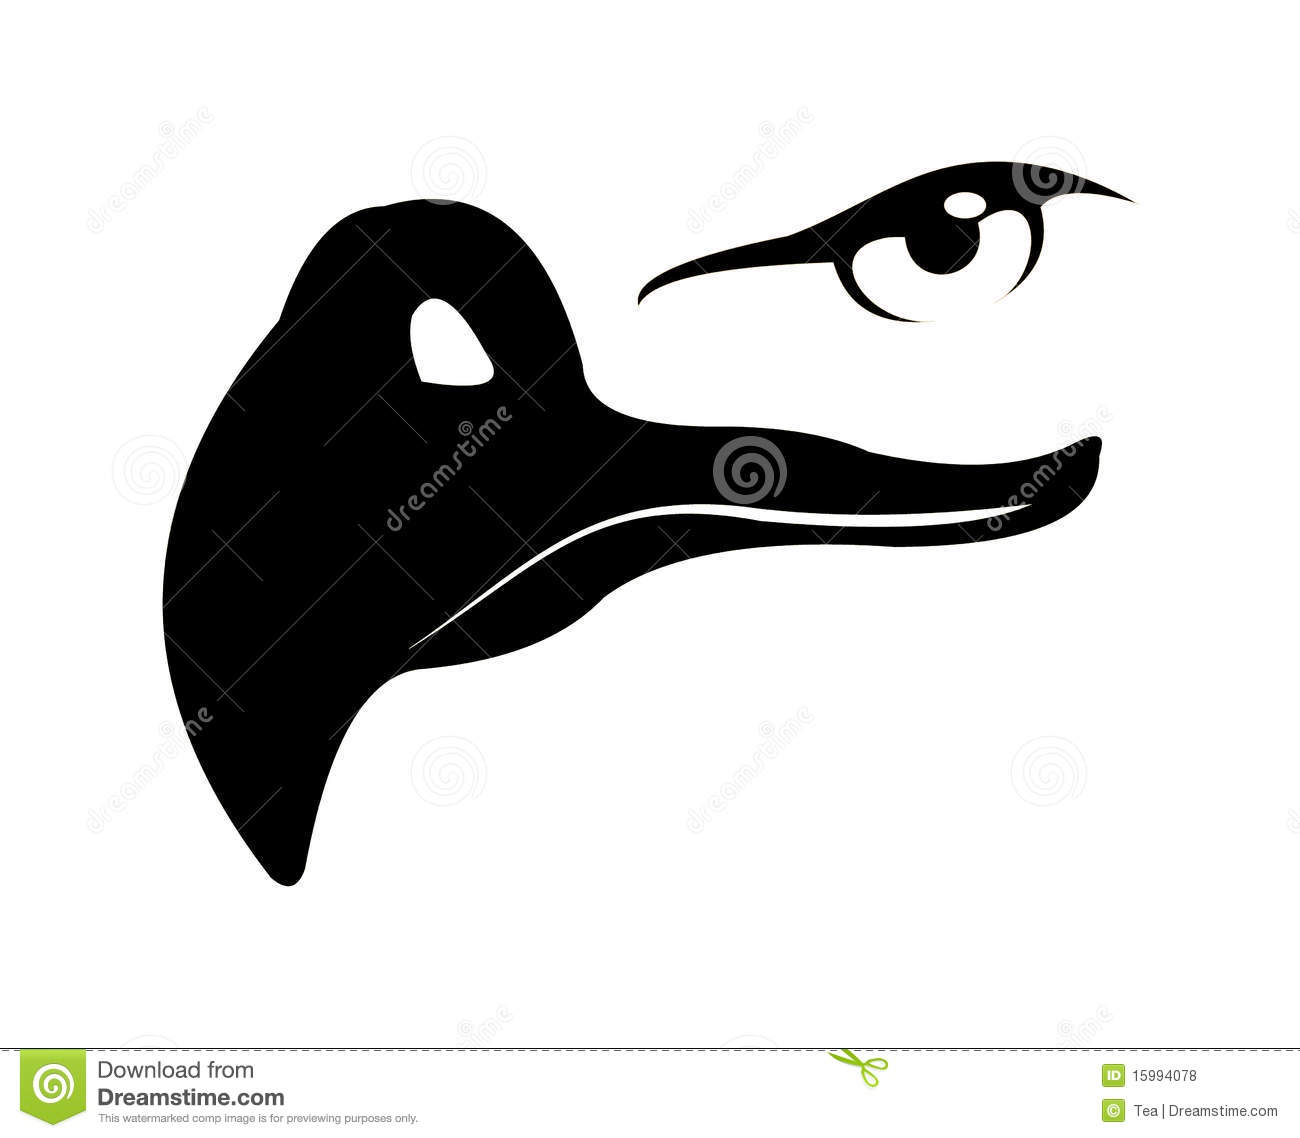 Royalty Free Stock Photography Drawn Owl White Background Sits Branch Tree Illustration Image35914197 as well Photographie Stock Libre De Droits Symbole D Oeil Sous Forme D Oiseau Image32030117 additionally Stock Images Evil Bat Image6539424 in addition Frog Emoji And Coffee Emoji moreover Dog Back Muscle Anatomy. on eagle eyes vector illustration